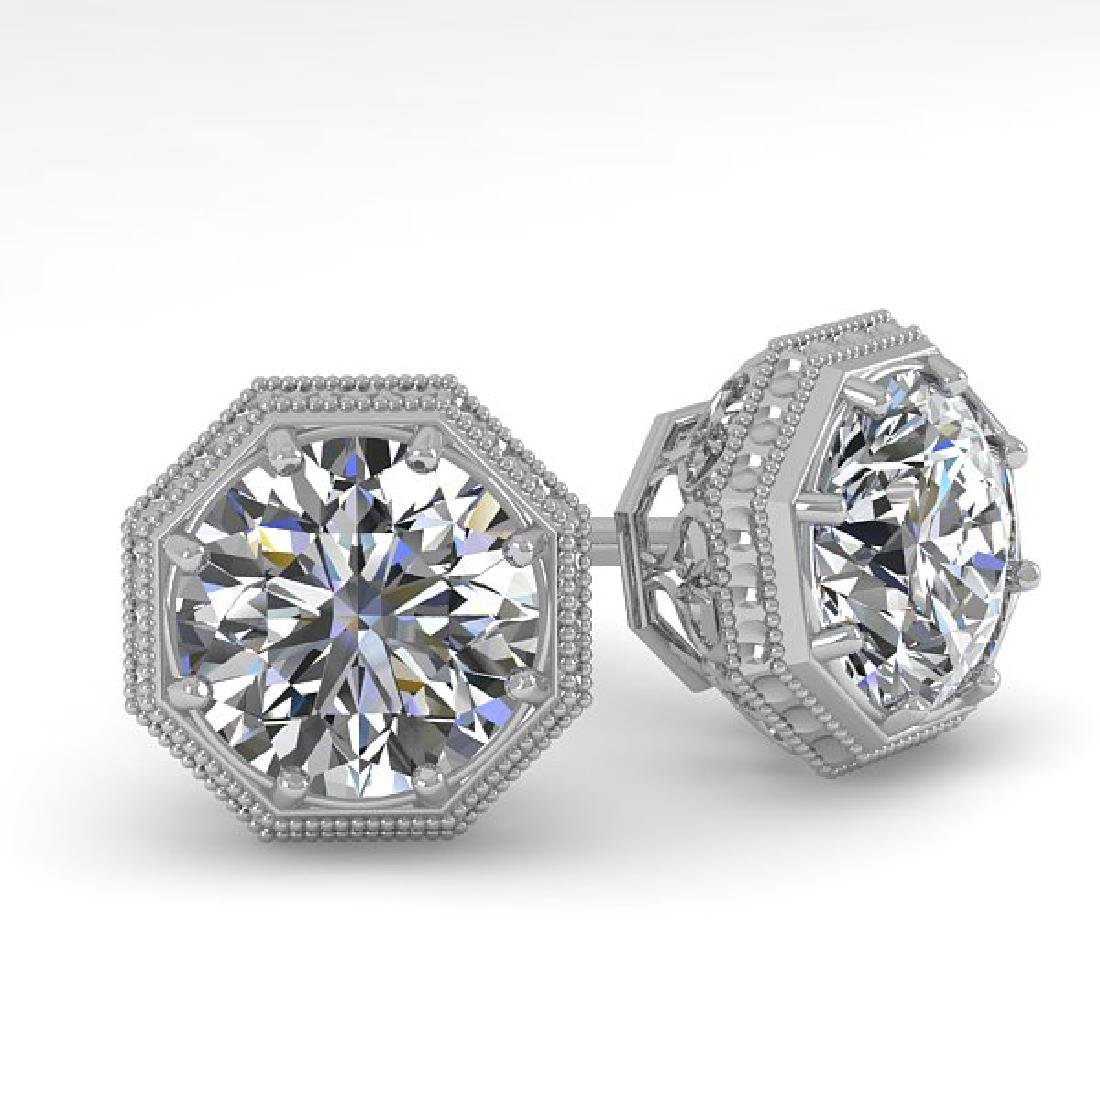 1.53 CTW Certified VS/SI Diamond Stud Earrings 14K